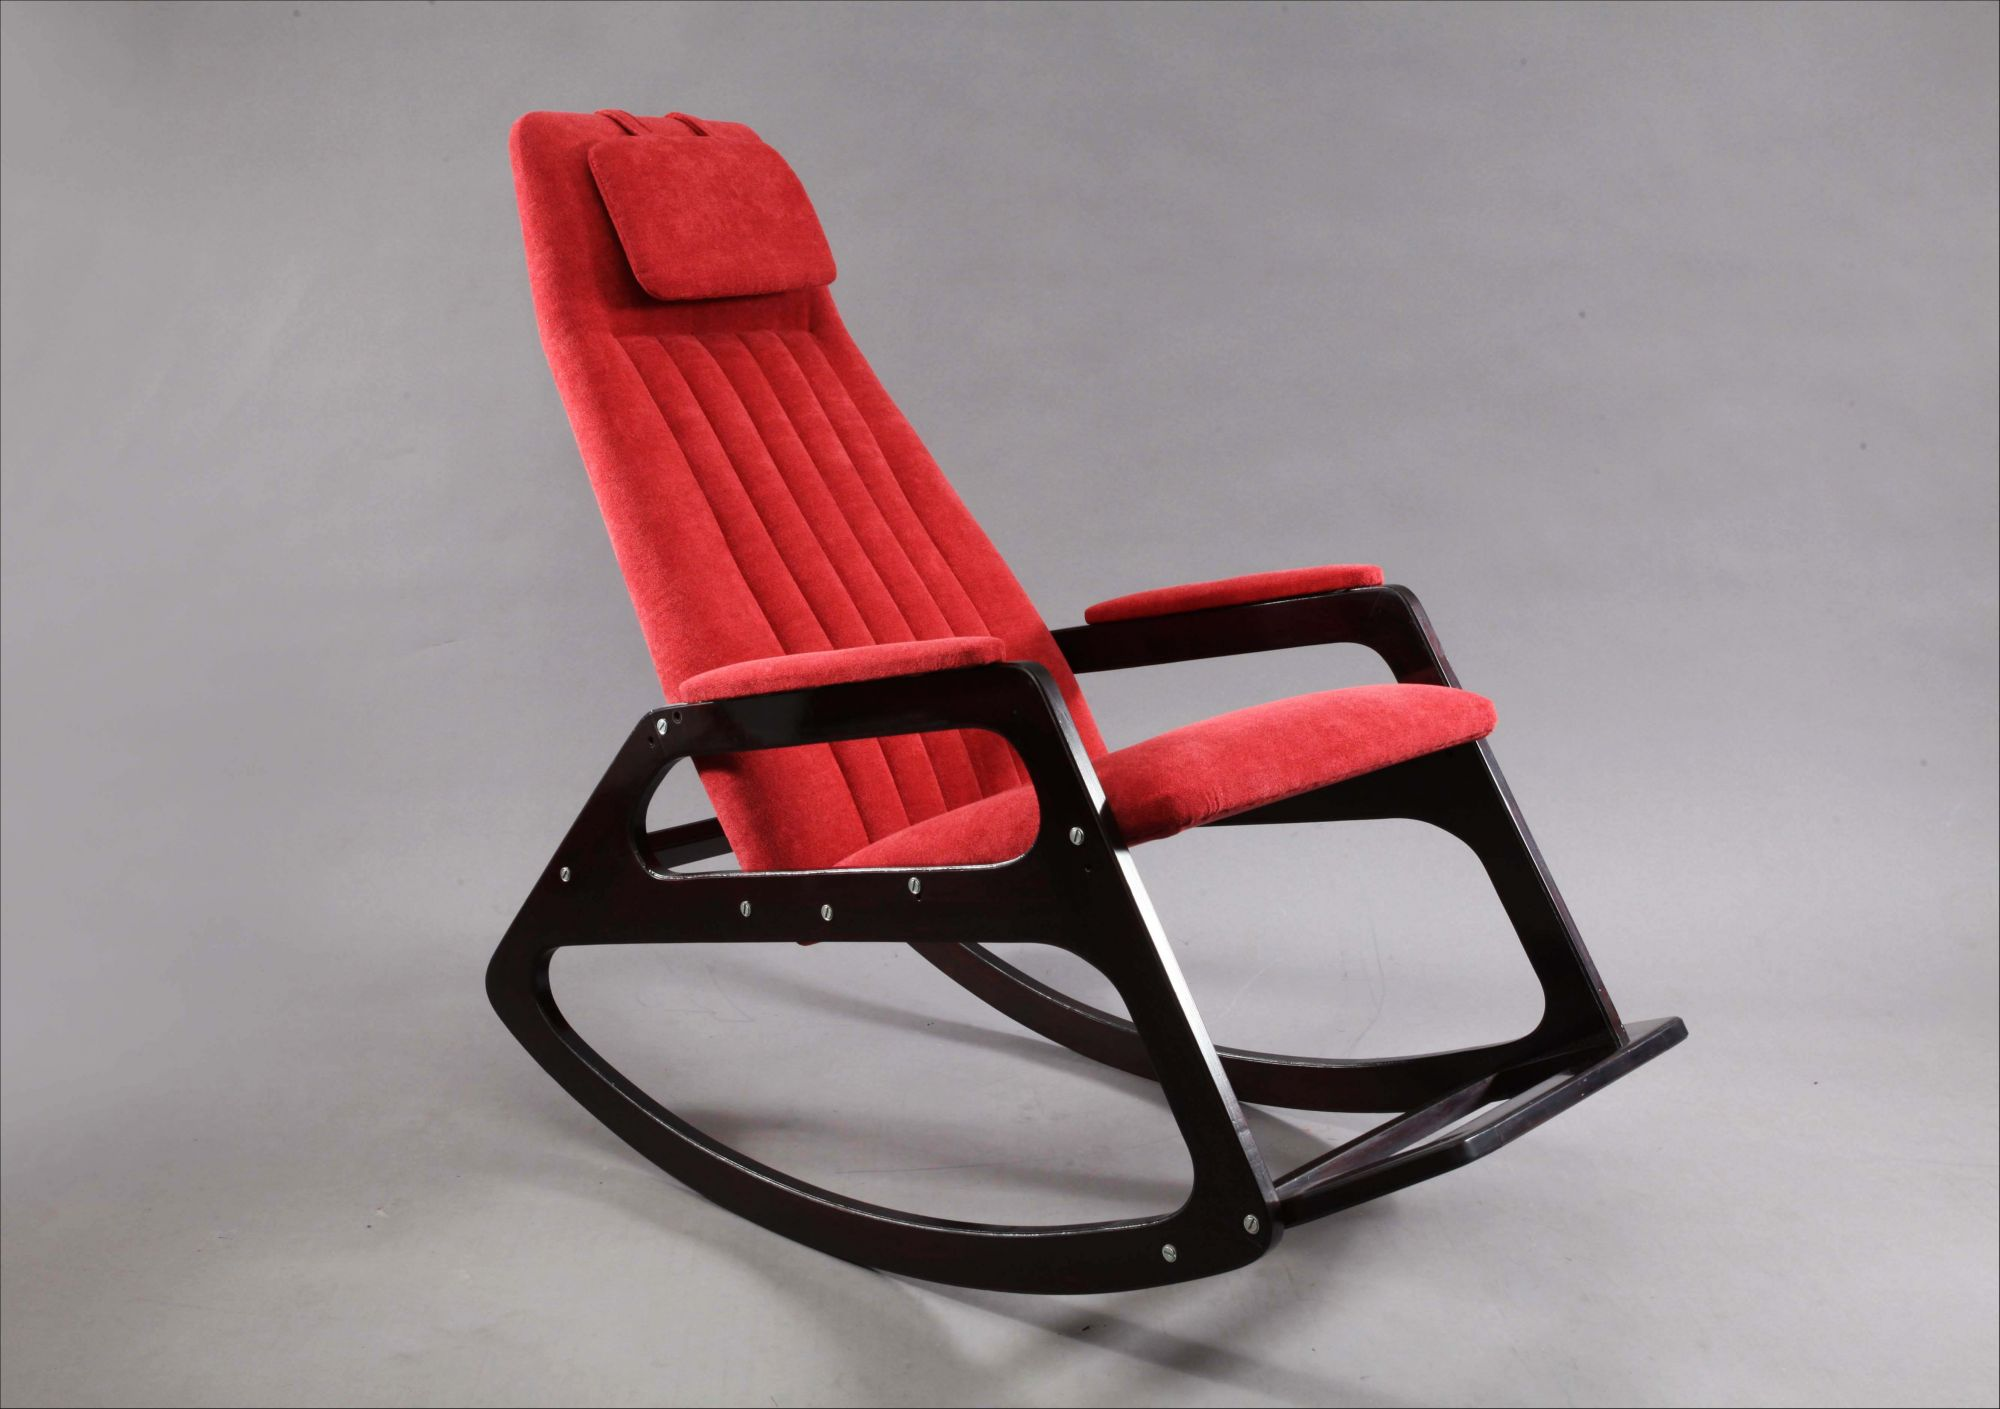 Awe Inspiring Italian Rocking Chair Attributed To Gianfranco Frattini 1960 Gmtry Best Dining Table And Chair Ideas Images Gmtryco